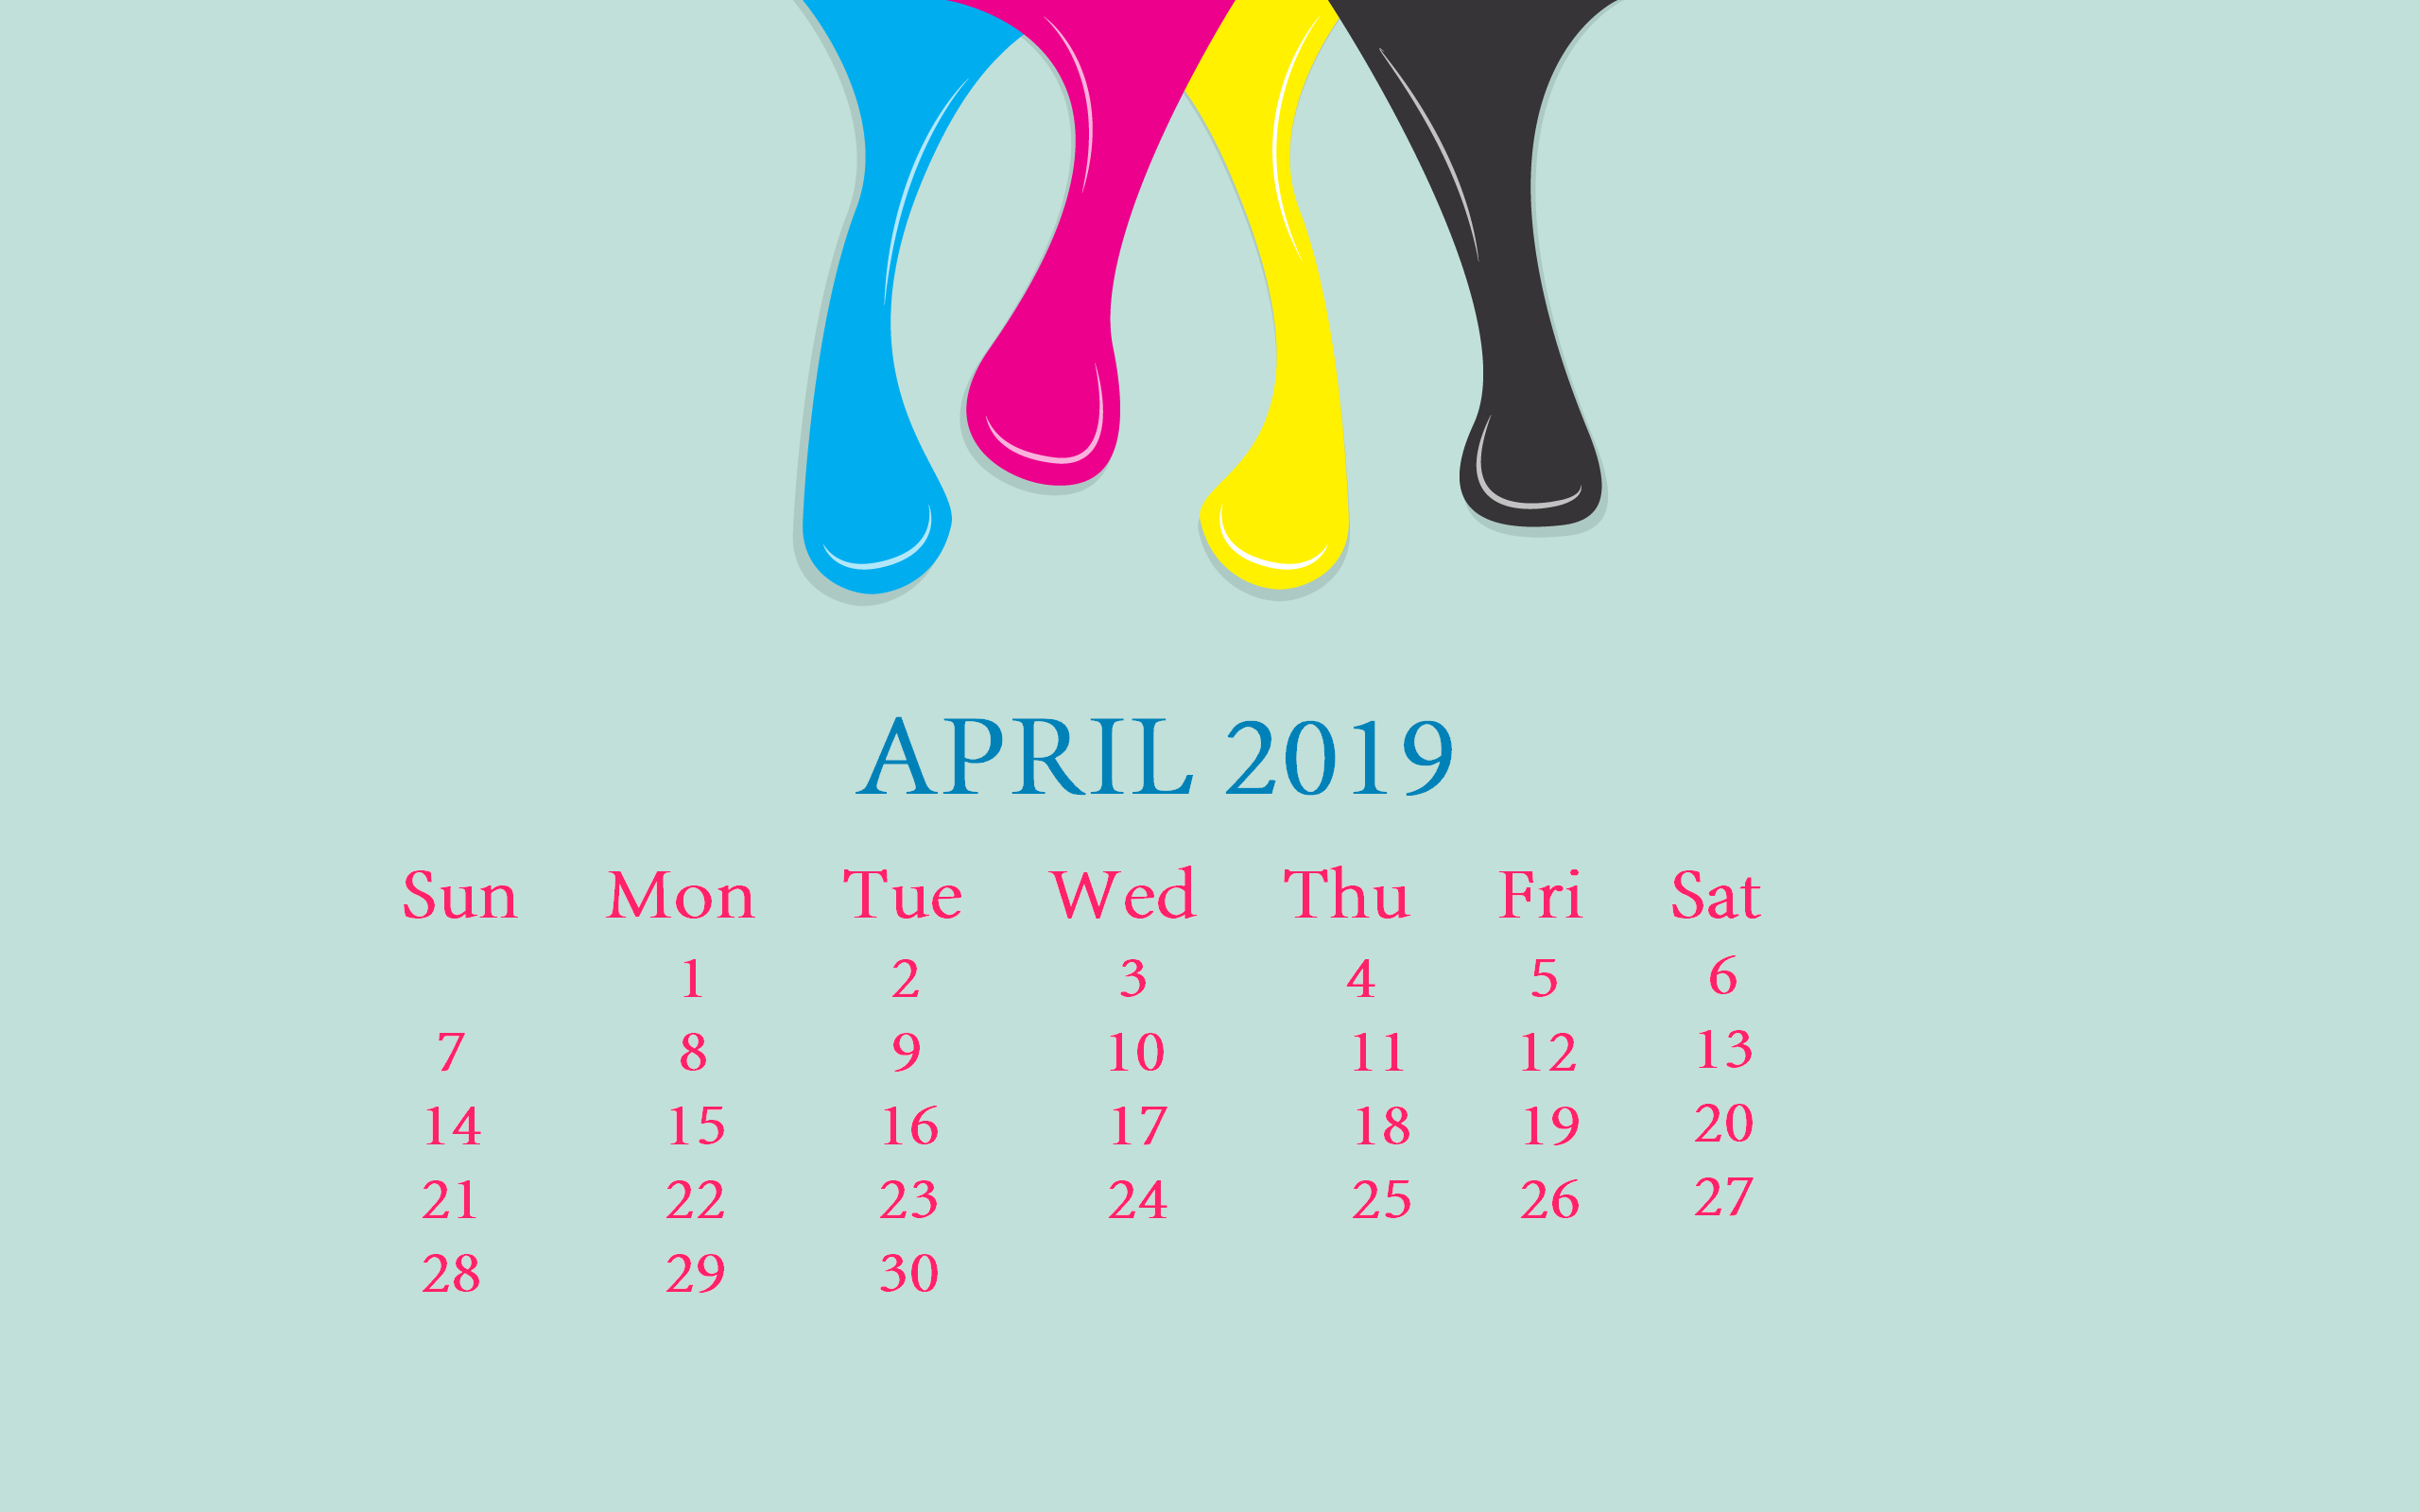 April 2019 Calendar Wallpaper For Desktop